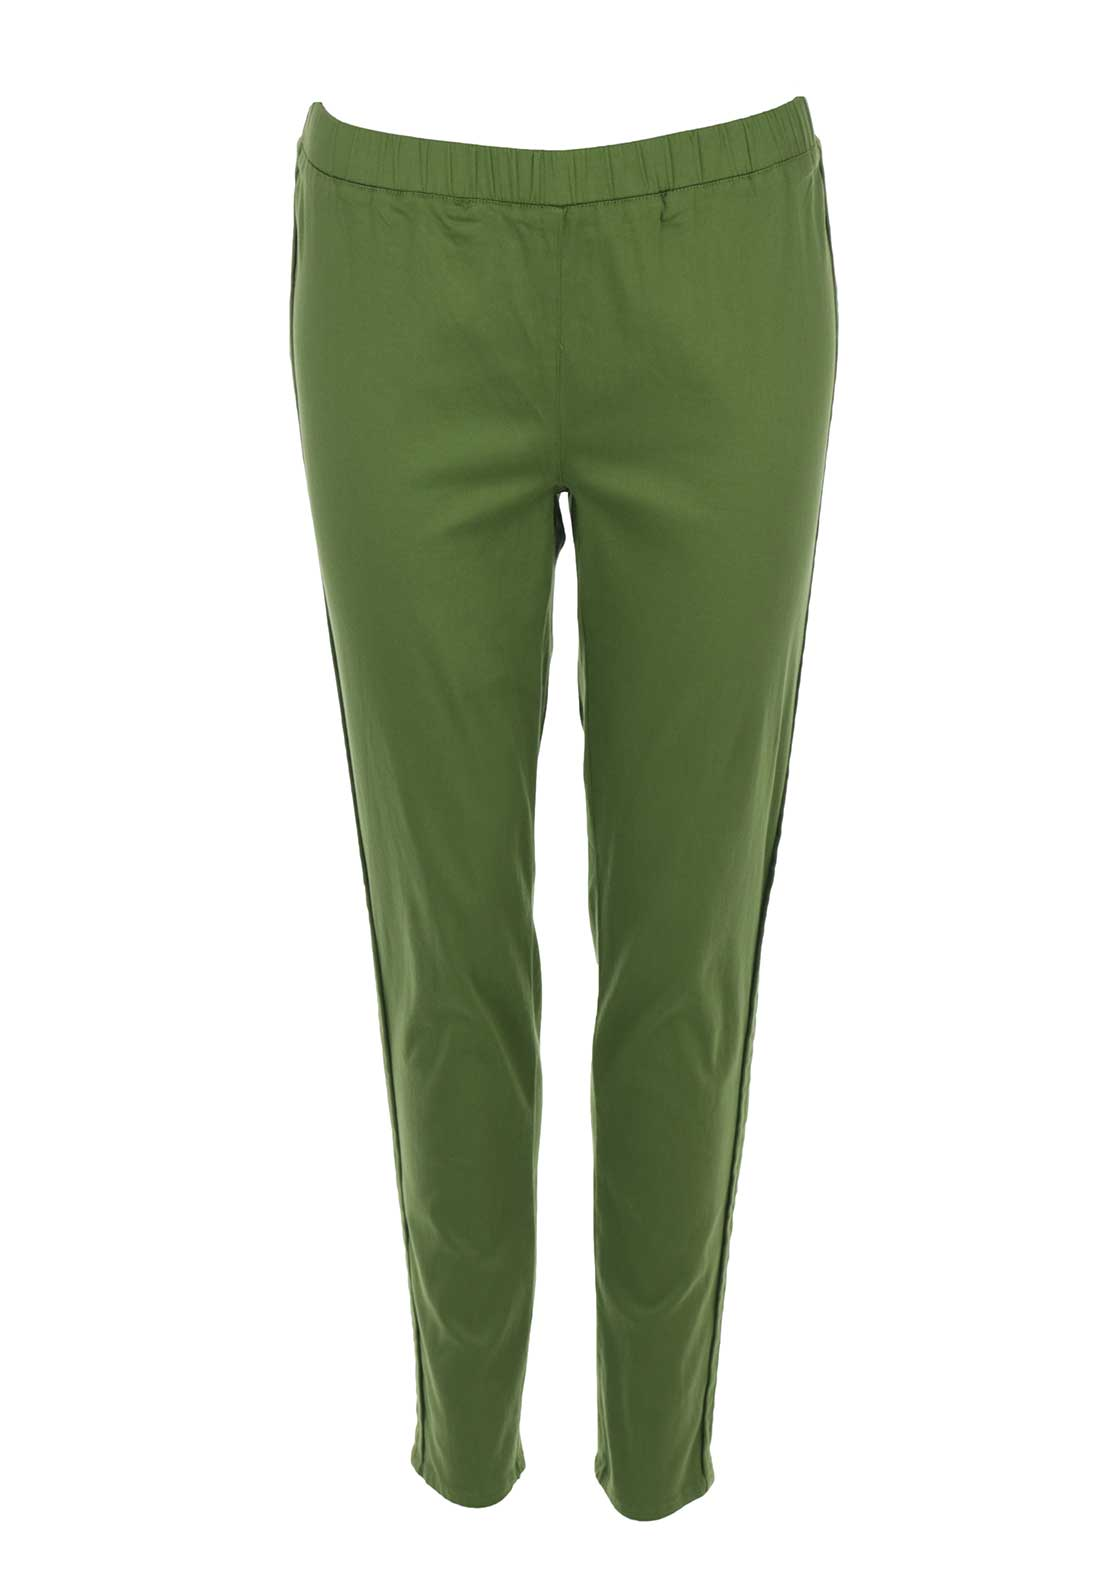 The Masai Clothing Company Perla Trousers, Green